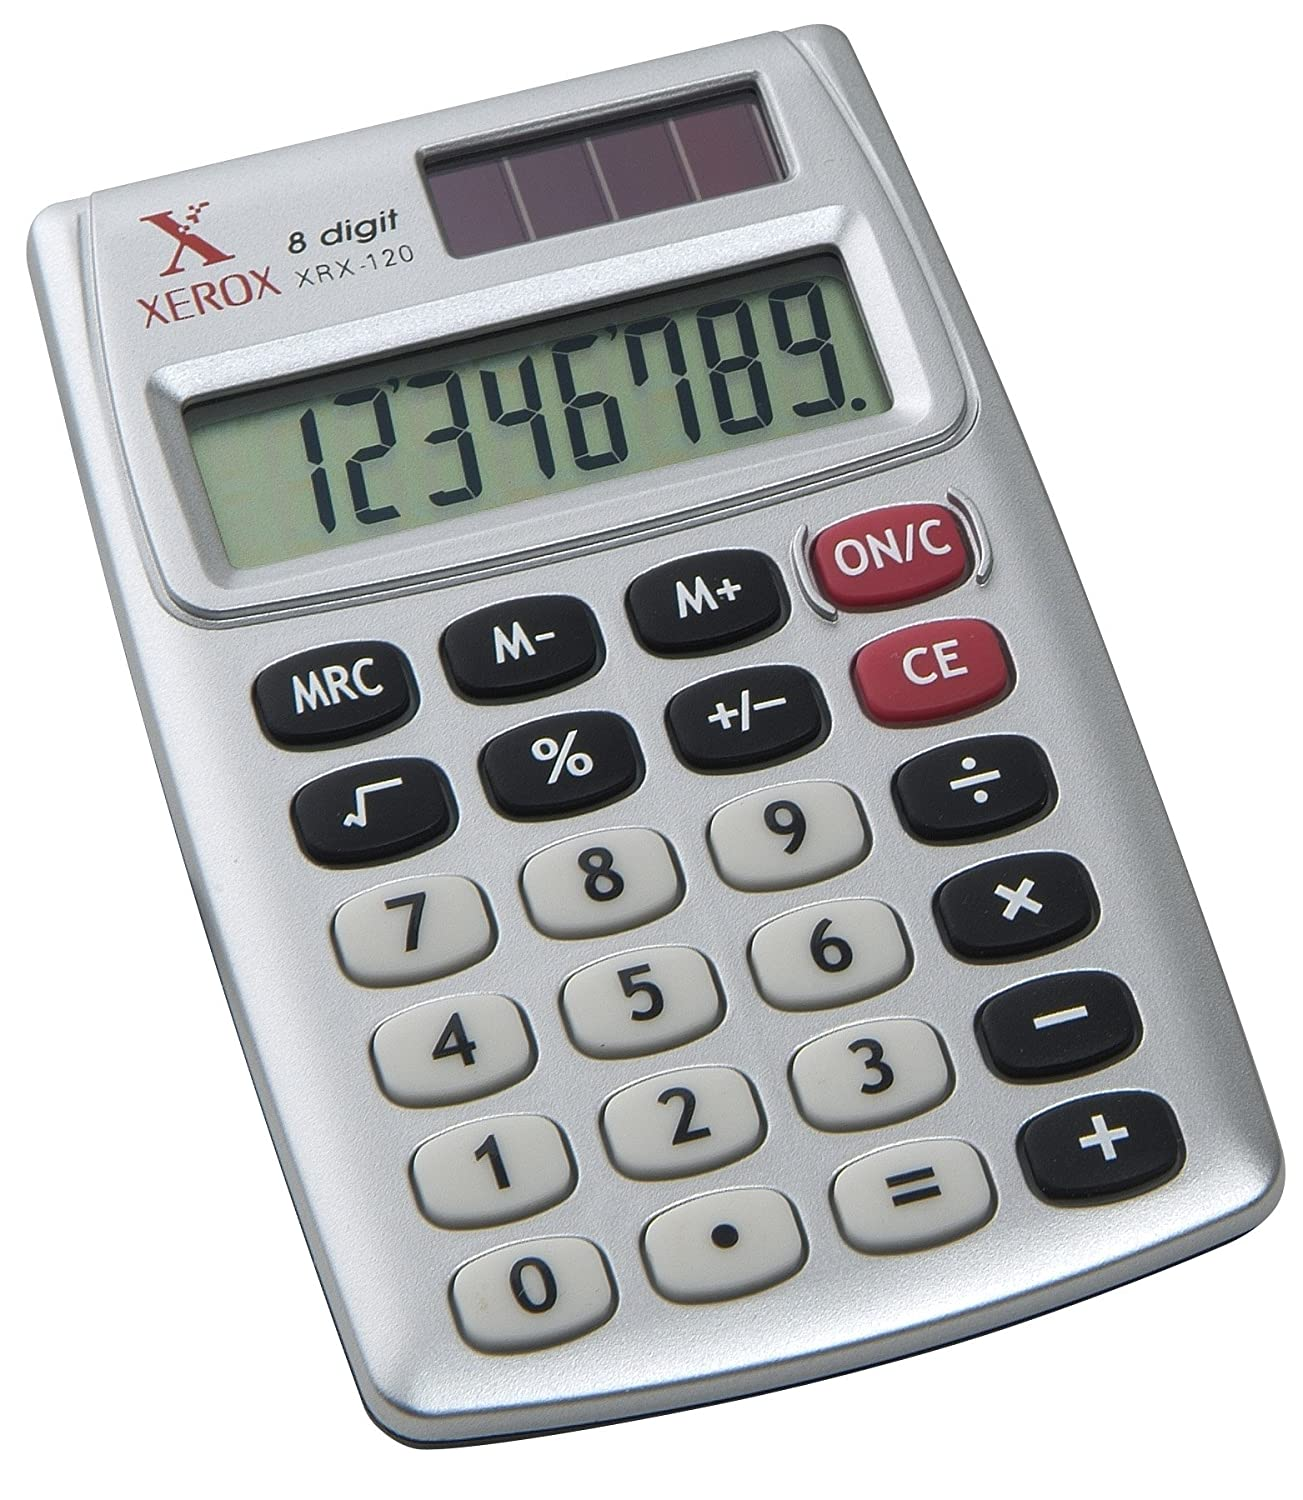 Staples Spl-120 8-digit Display Calculator XRX-120